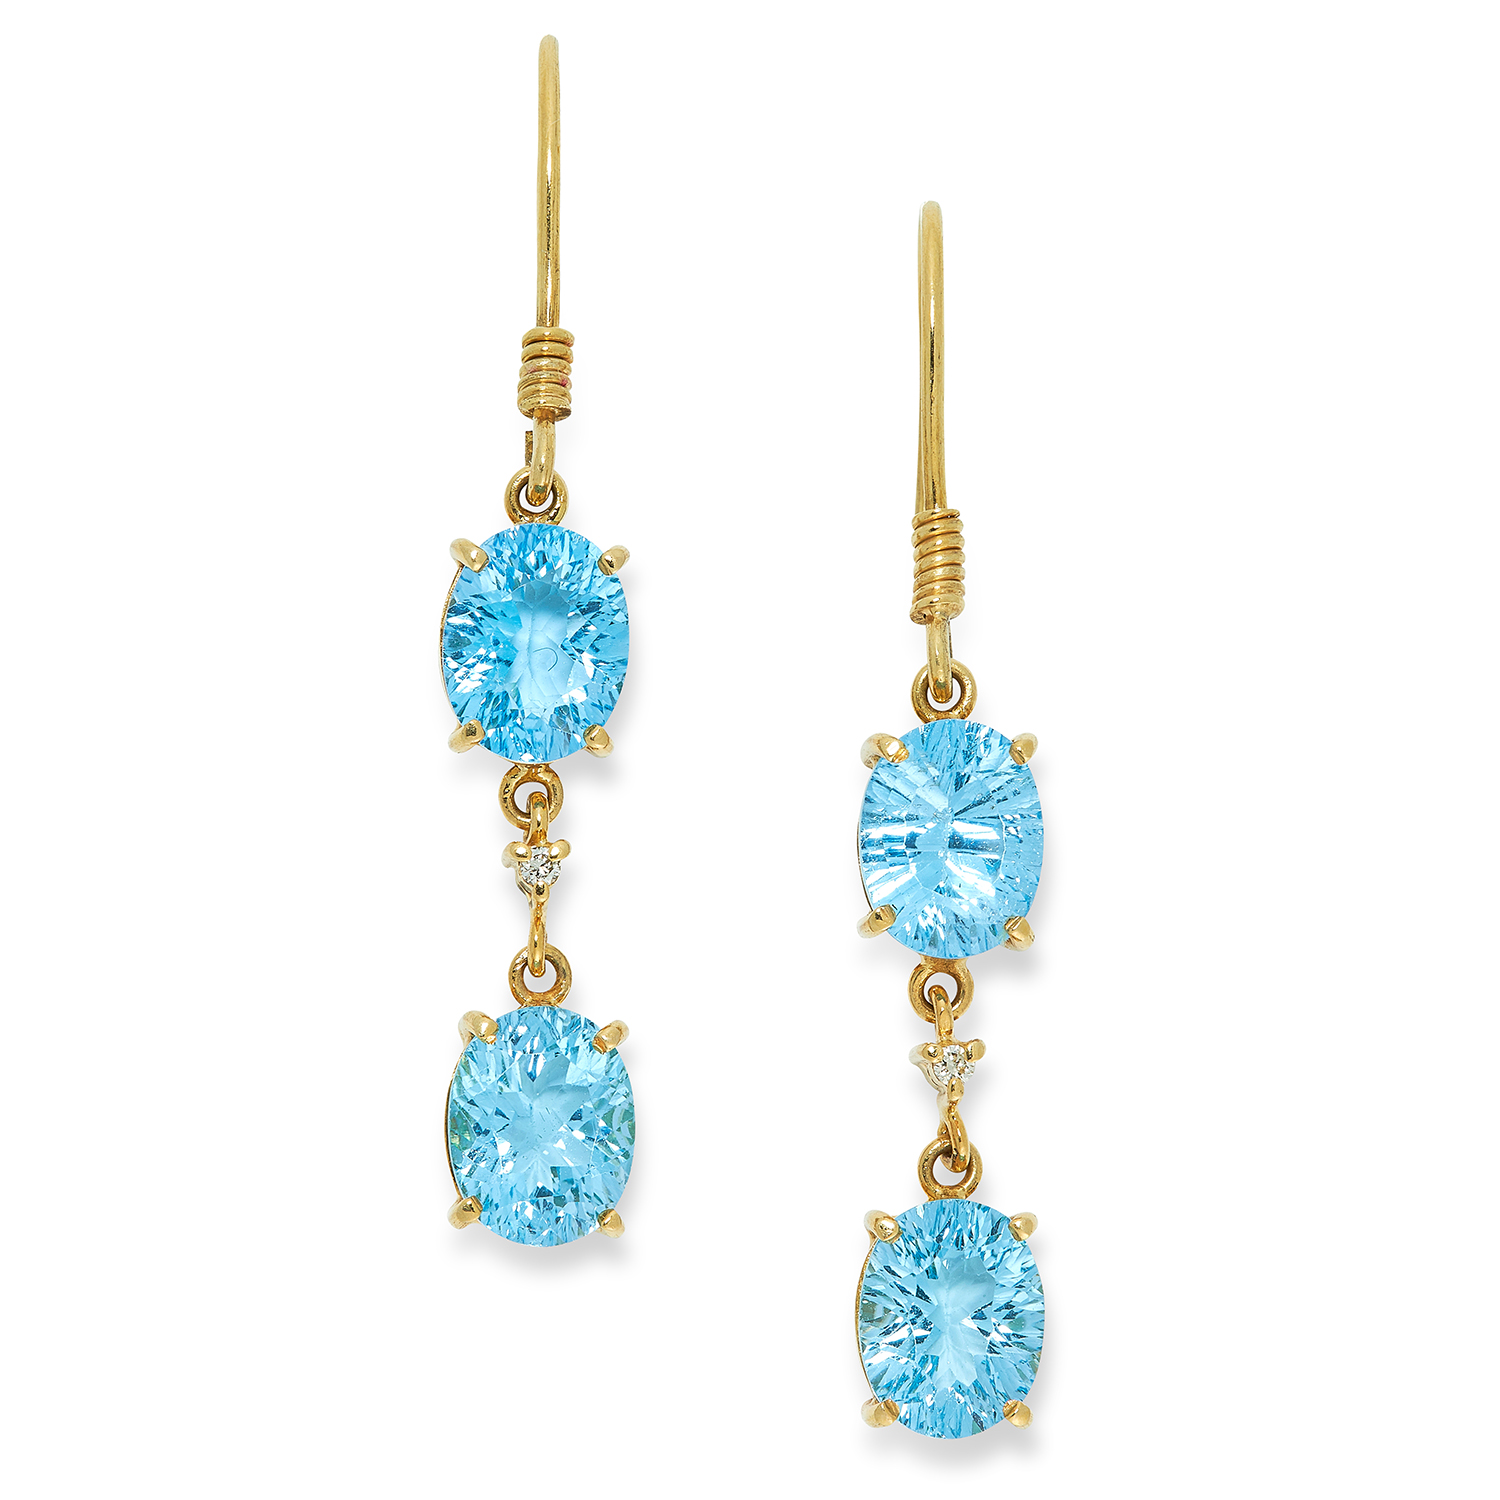 BLUE TOPAZ AND DIAMOND EARRINGS set with oval cut blue topaz and round cut diamonds, 5.2cm, 6.6g.